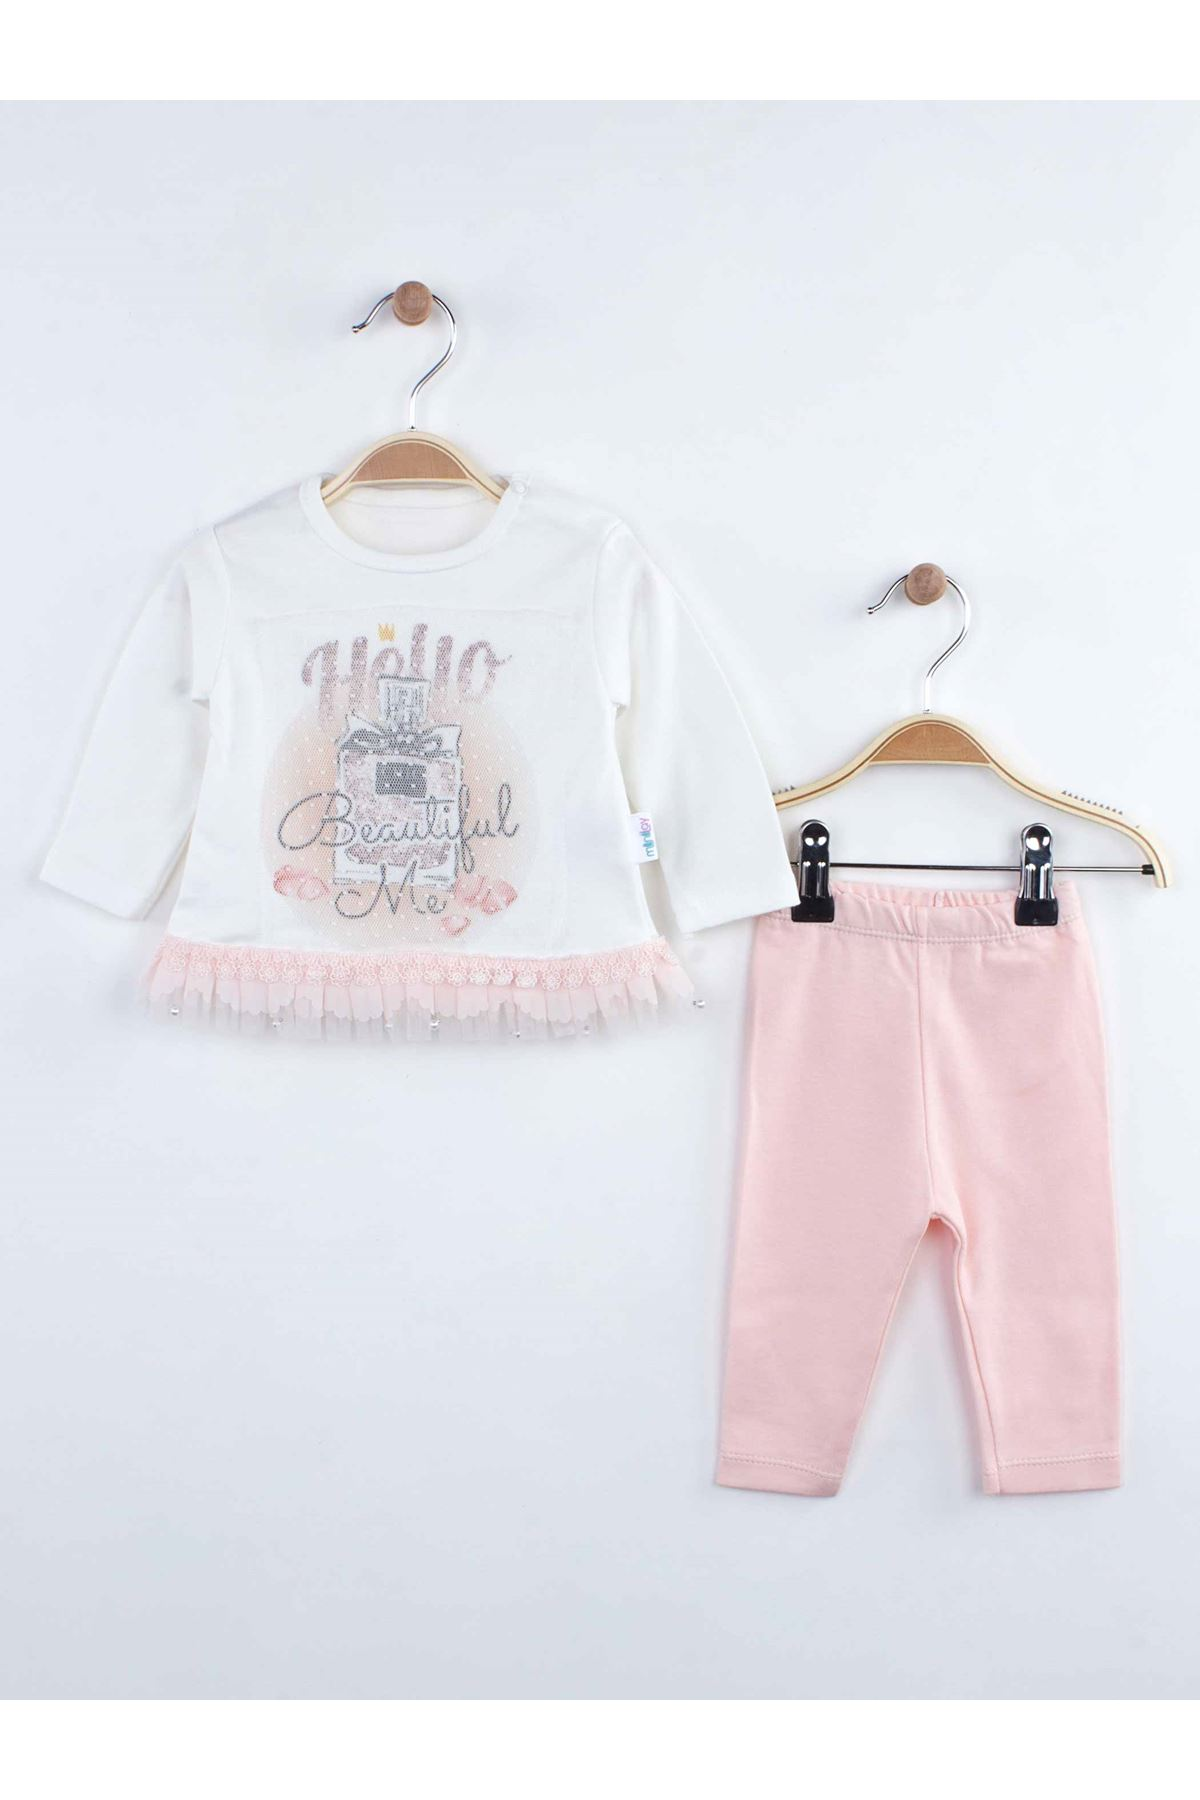 Pink Baby Girl Tights Tops Suit 2 Piecs 2021 Fashion Clothes Season Cotton Seasonal Casual Girls Babies Clothing Outfits Models